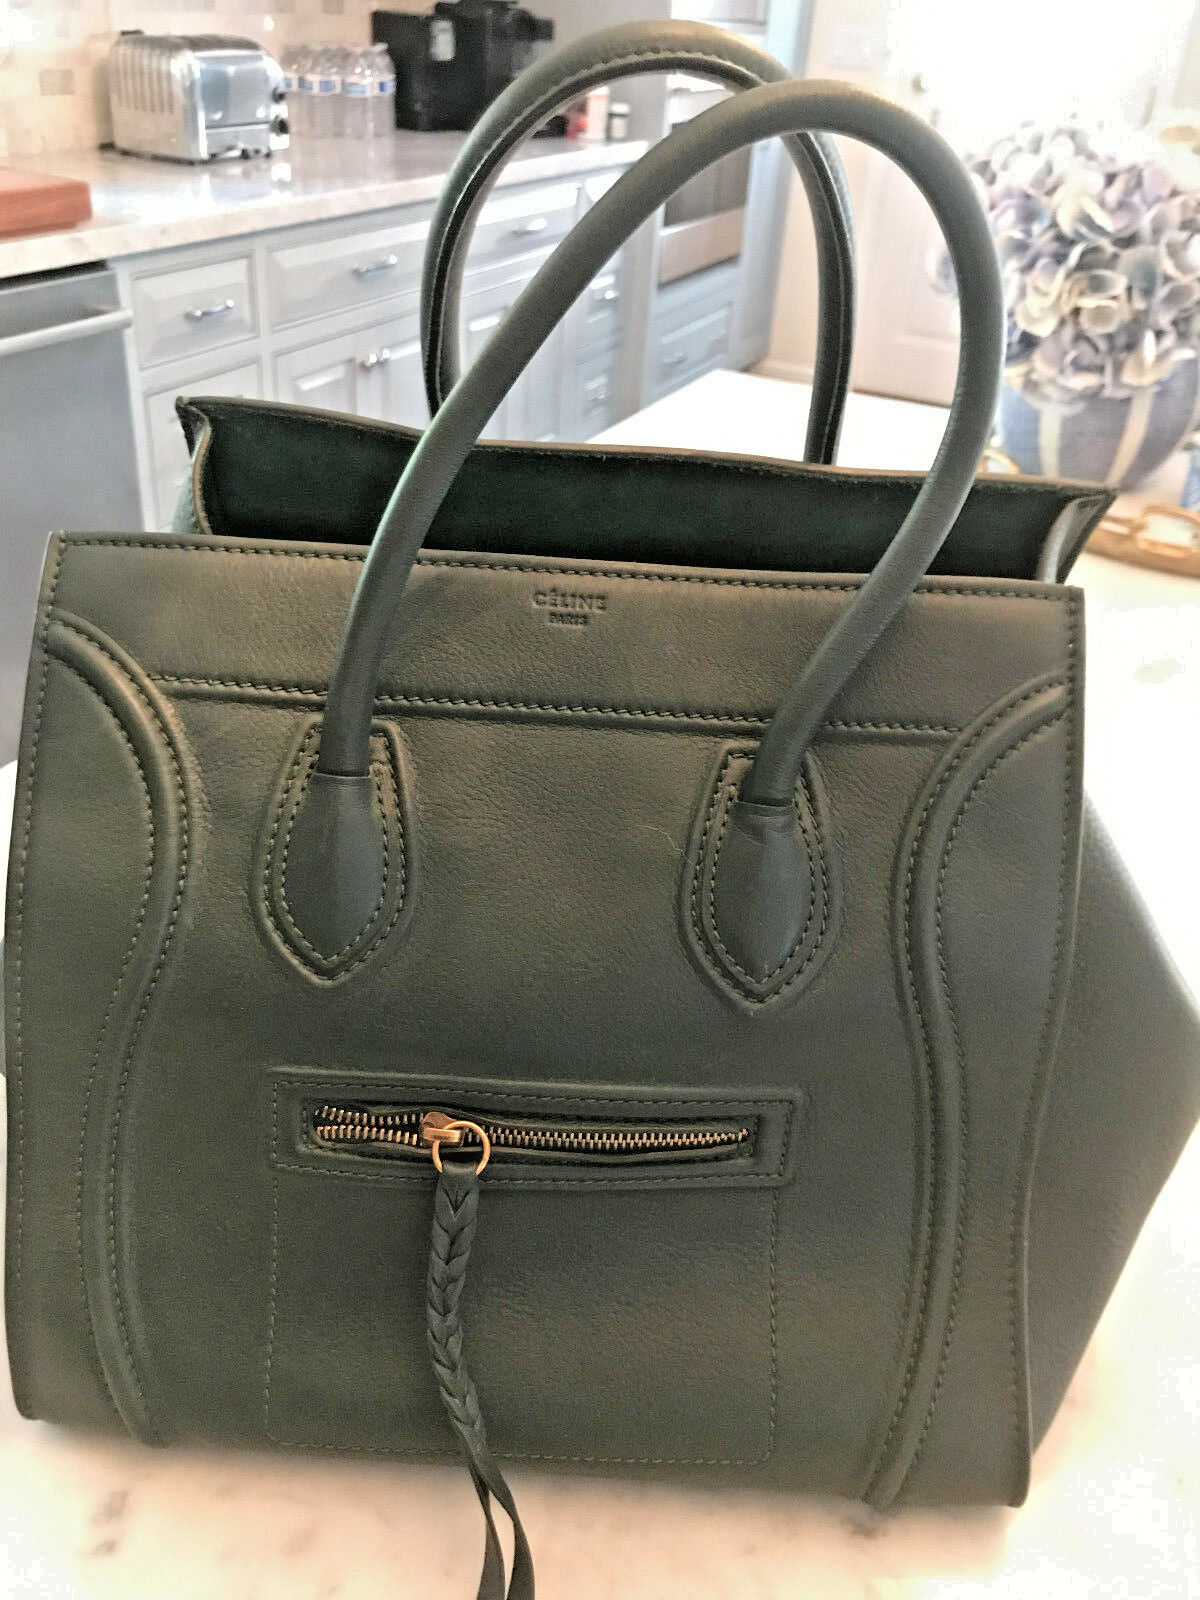 Authentic Celine Large Phantom Luggage Tote Handbag Forest GreenLeather